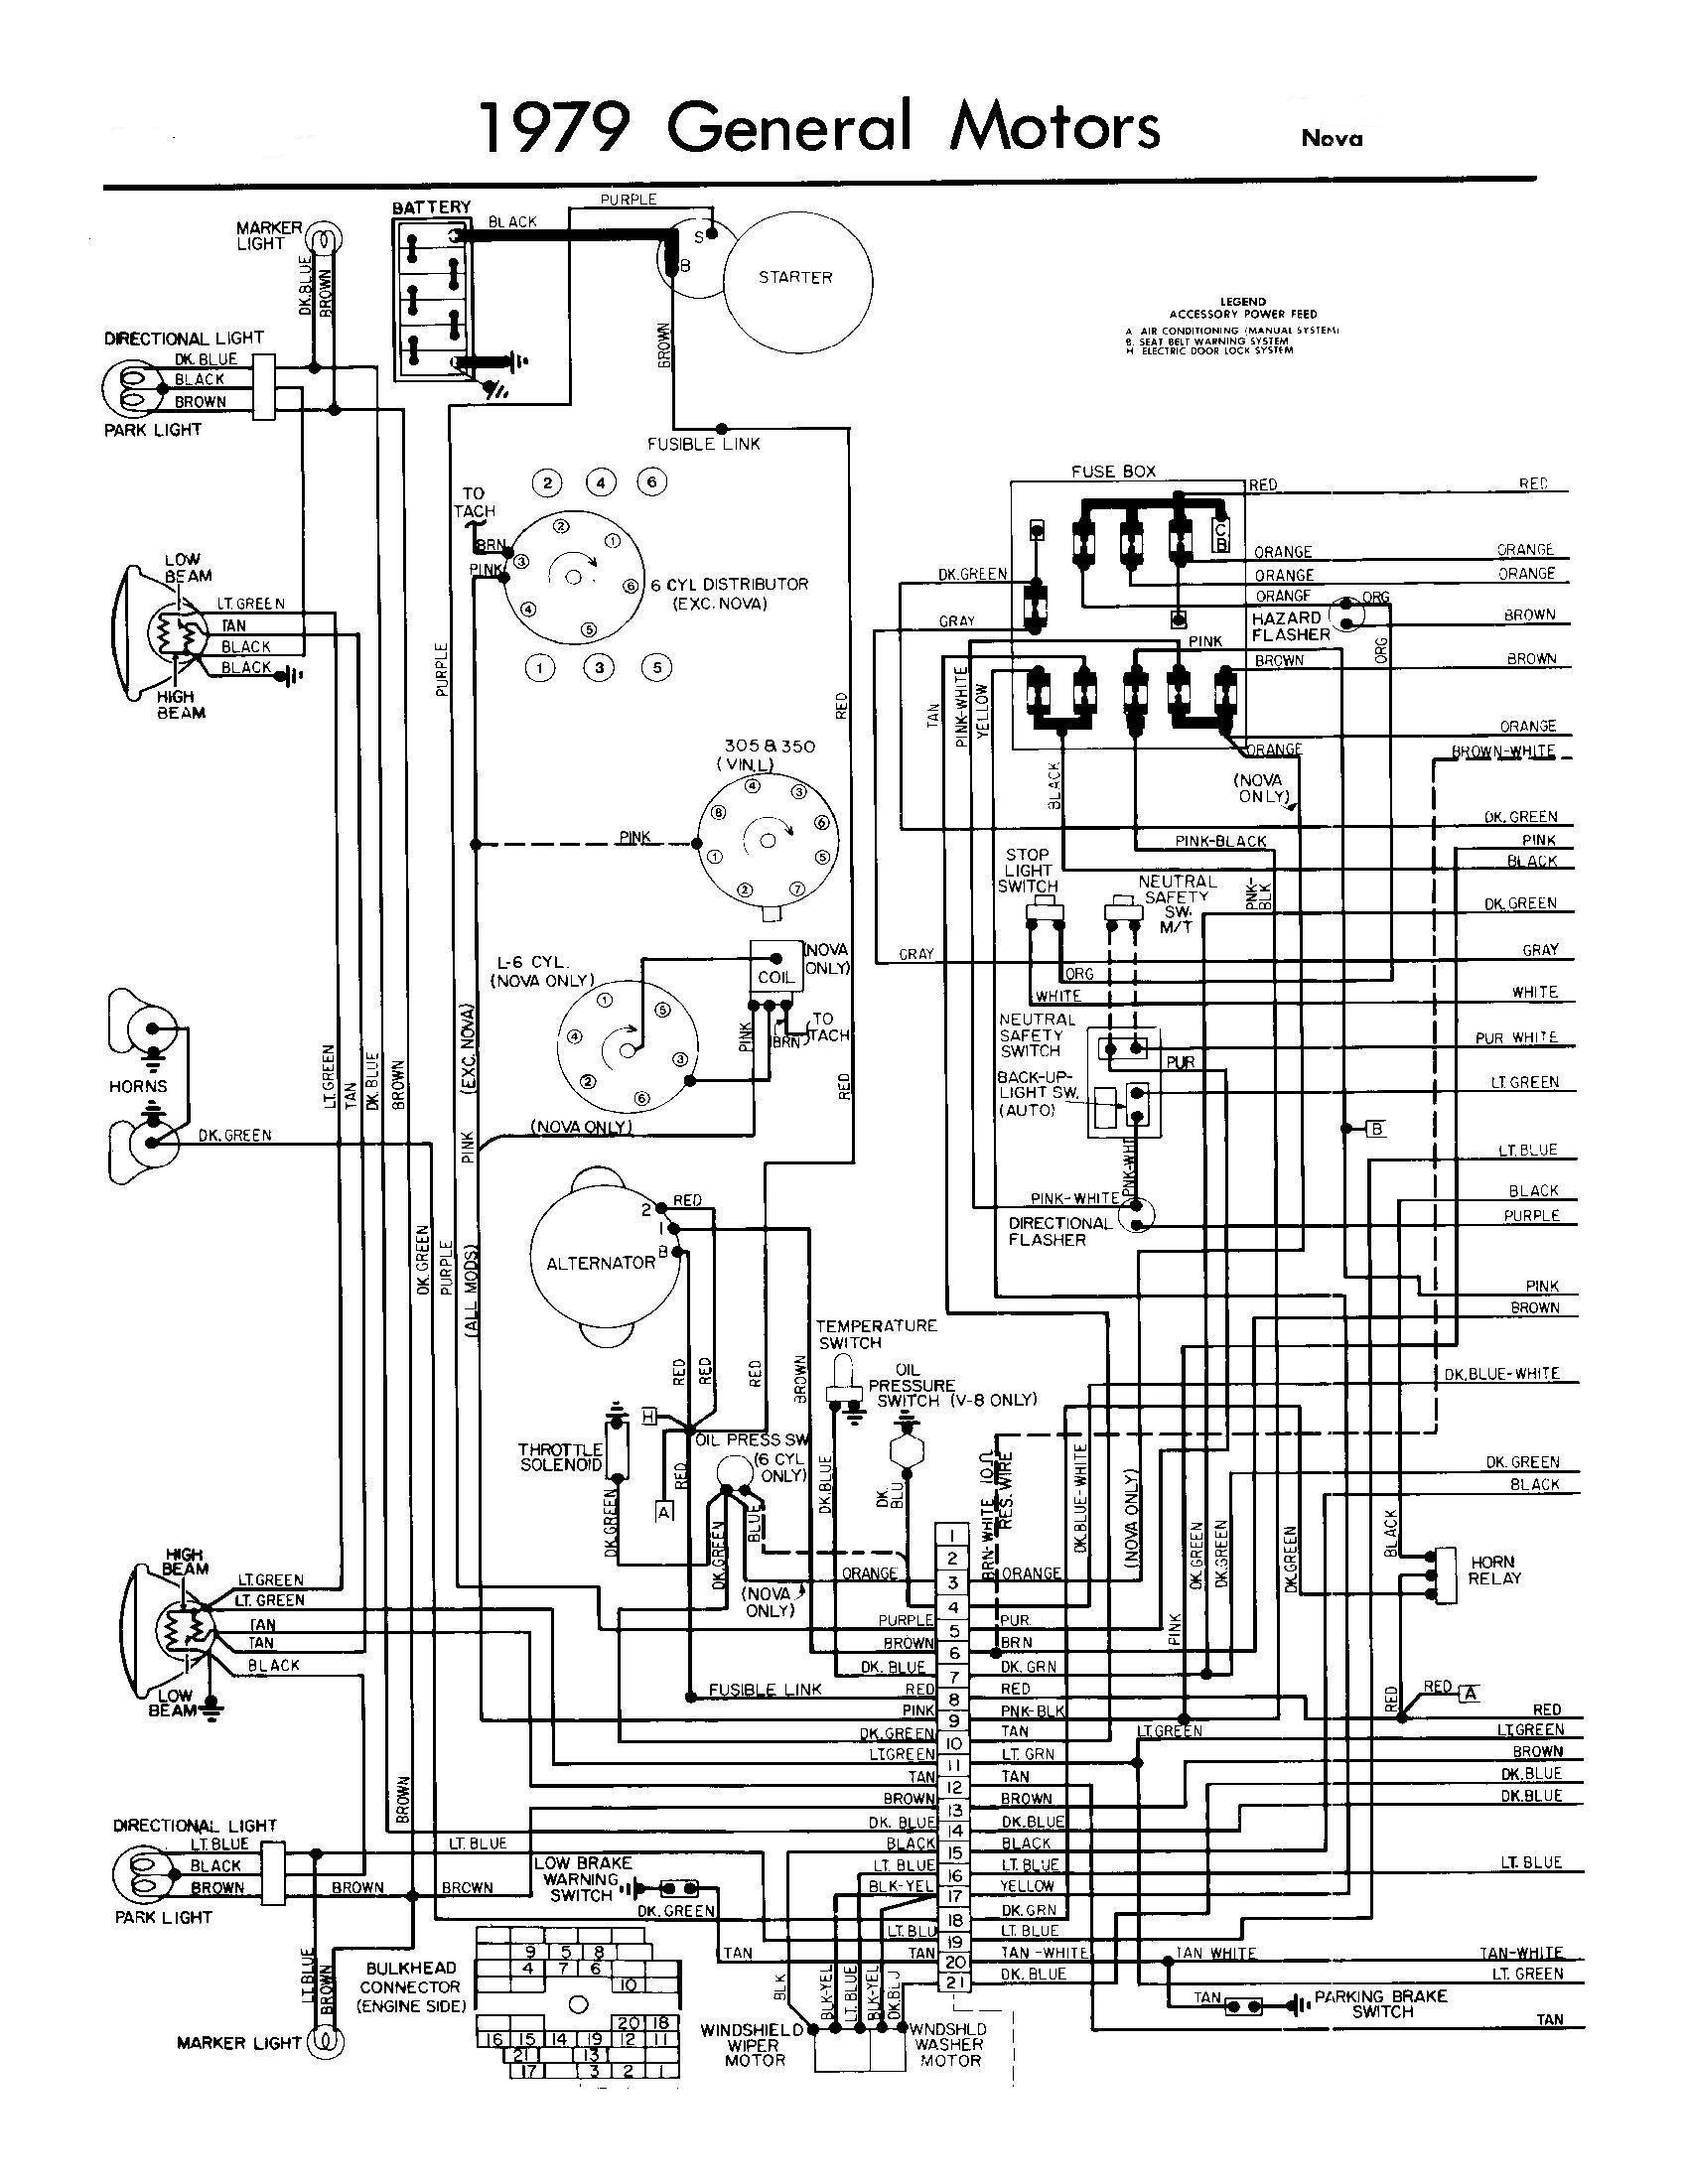 1980 Chevy Wiring Diagram - Wiring Diagram Server give-speed -  give-speed.ristoranteitredenari.it | 1980 Chevy Alternator Wiring |  | Ristorante I Tre Denari Manerbio